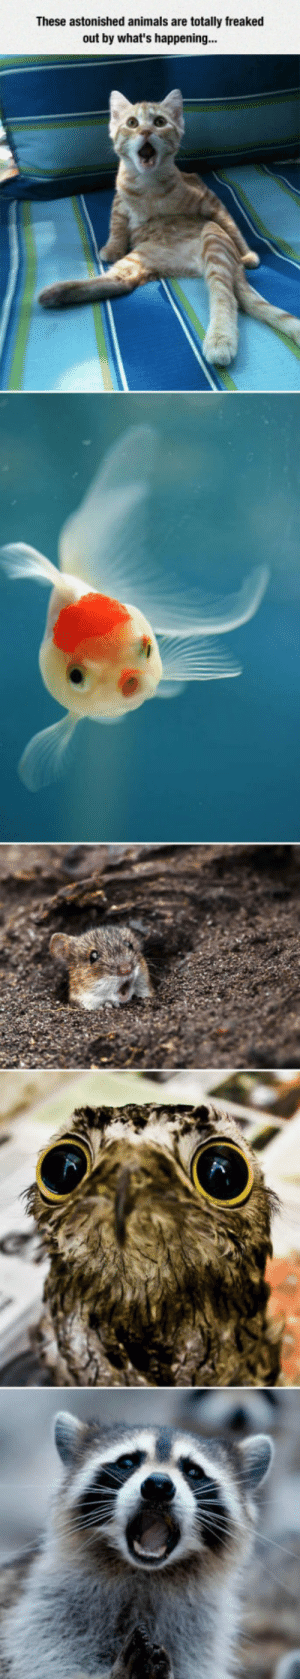 Animals, Tumblr, and Blog: These astonished animals are totally freaked  out by what's happening... awesomesthesia:  What Did They See?